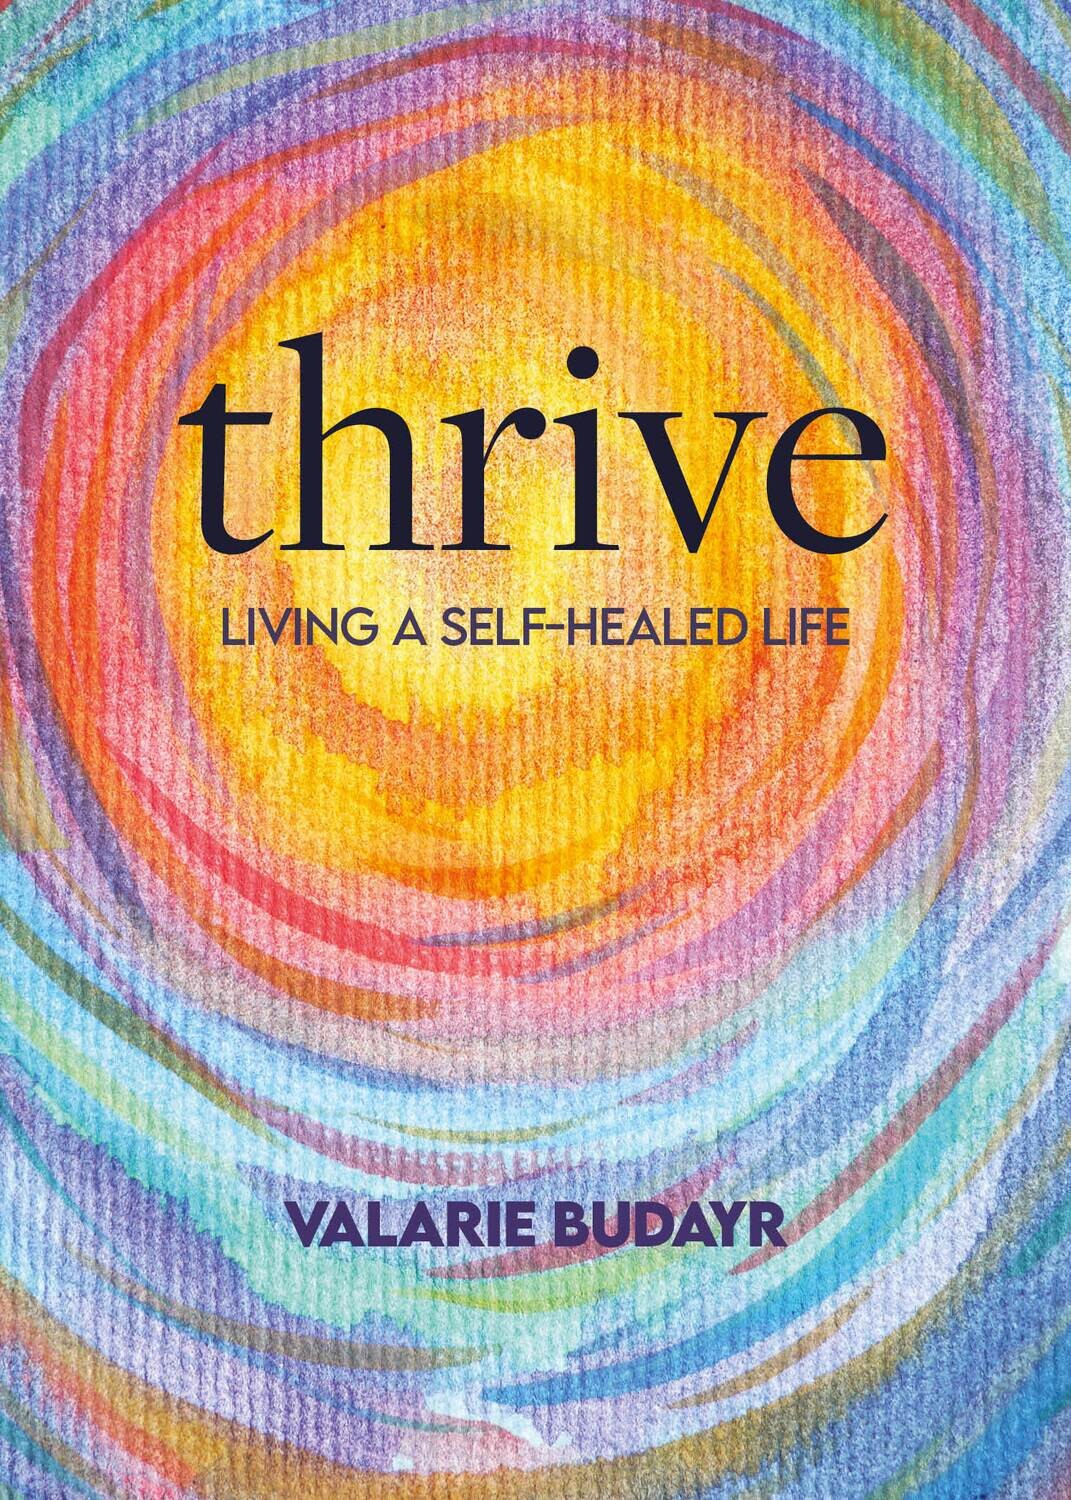 Pre-order Thrive: Living A Self-Healed Life by Valarie Budayr